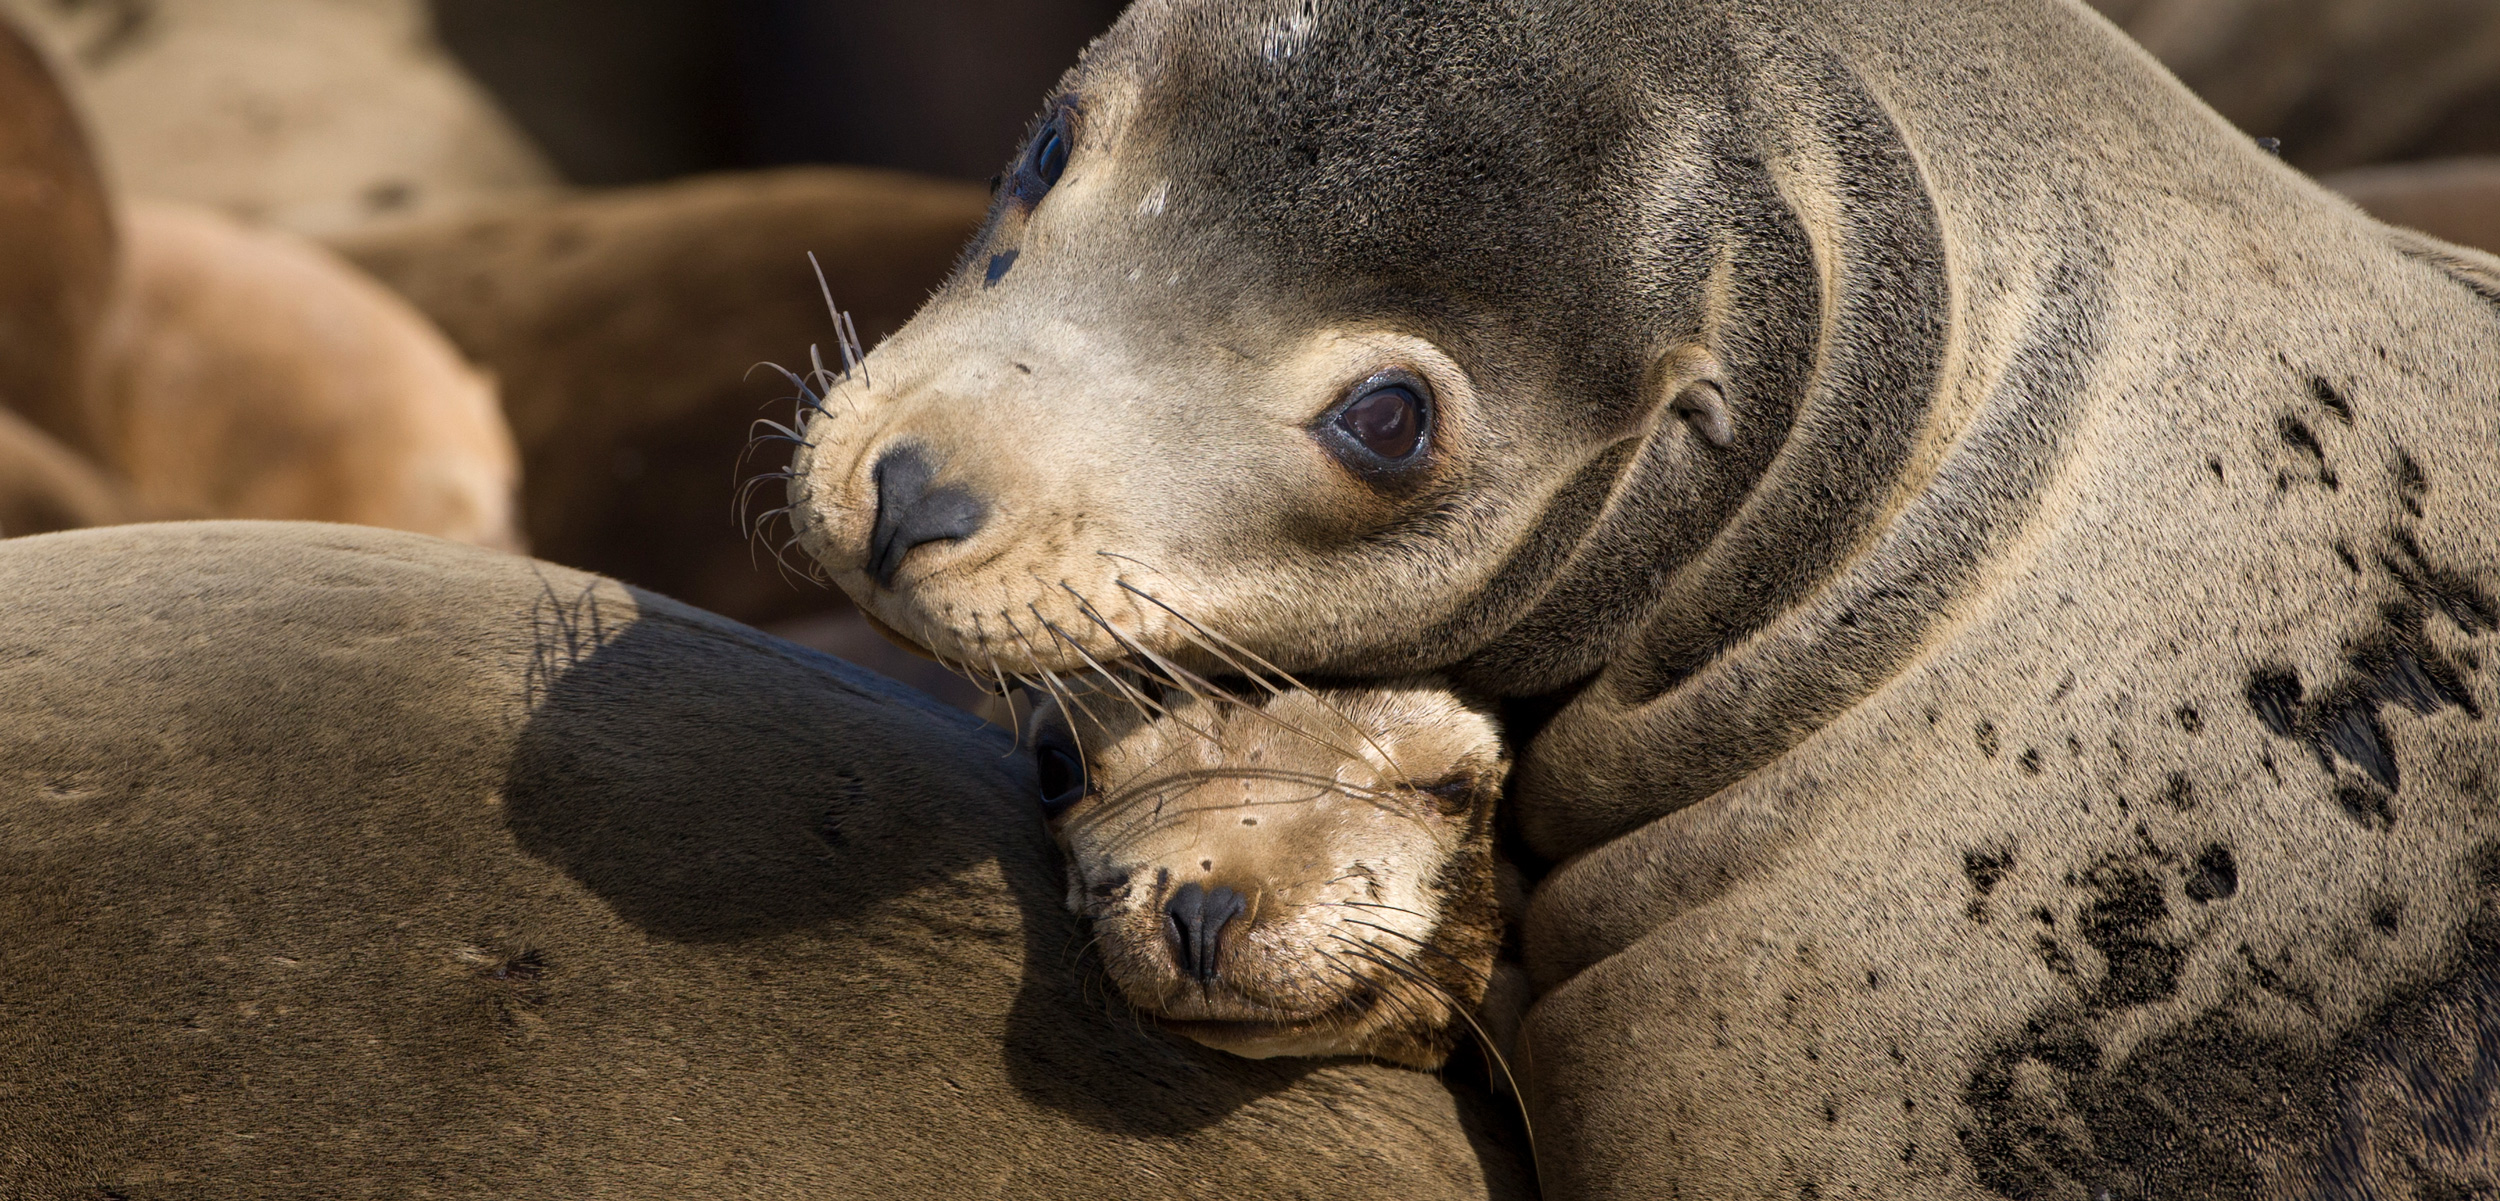 Three years of abnormally warm water in the North Pacific had a huge effect on sea lions and other species. Photo by Suzi Eszterhas/Minden Pictures